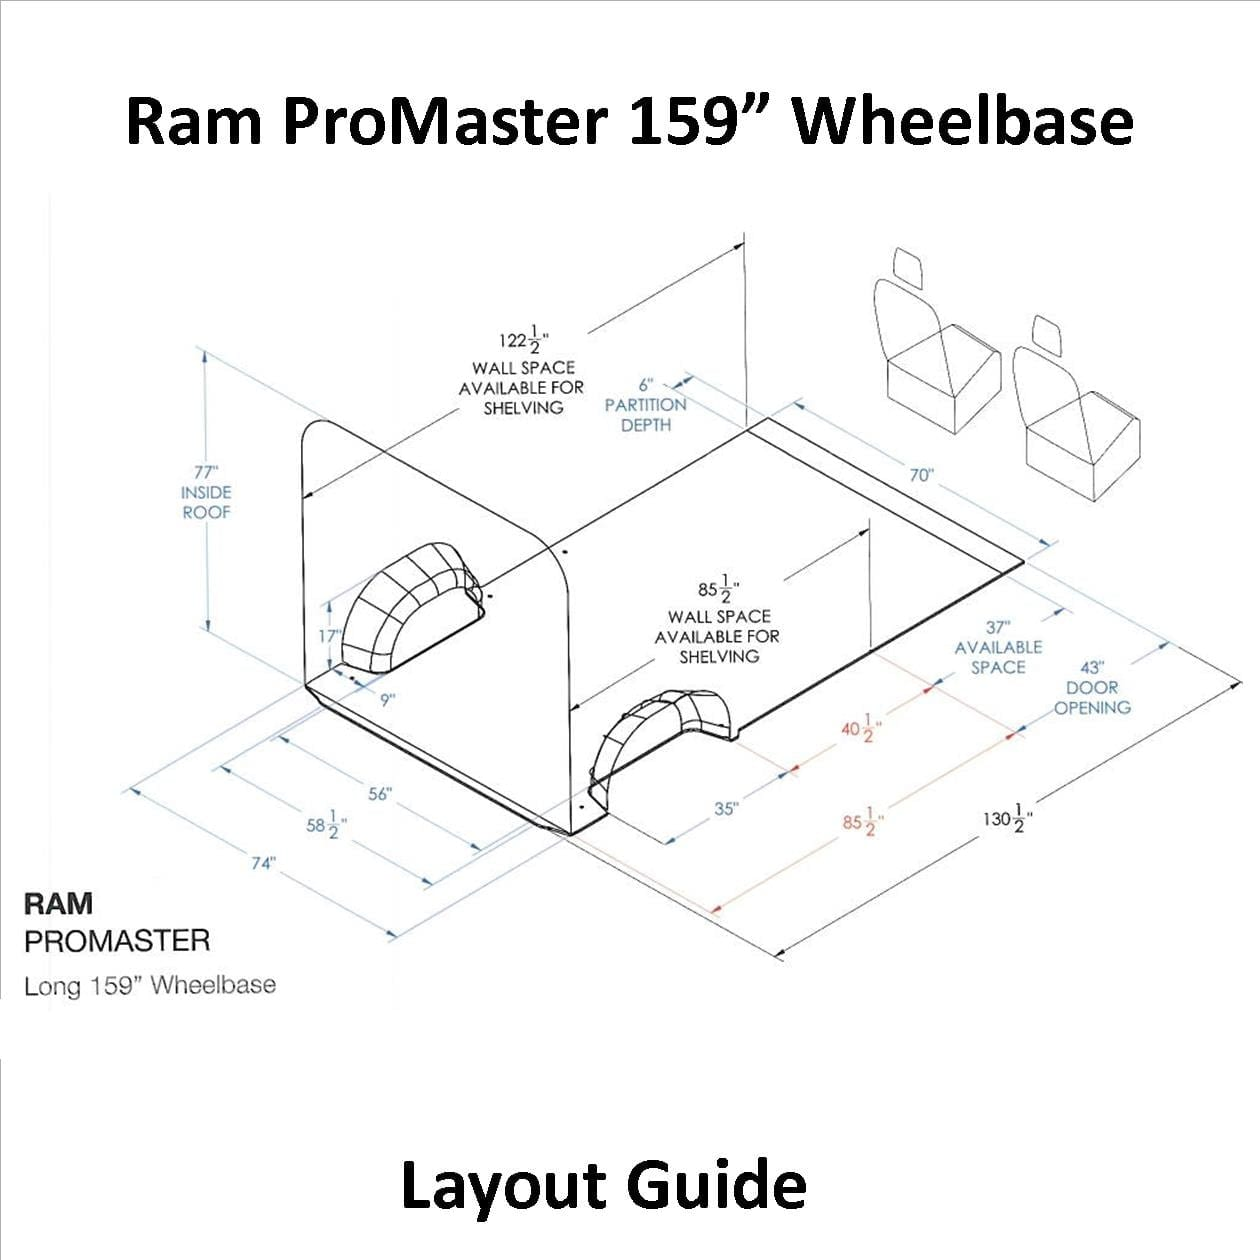 Ram Promaster Layout Guide 159 Wb